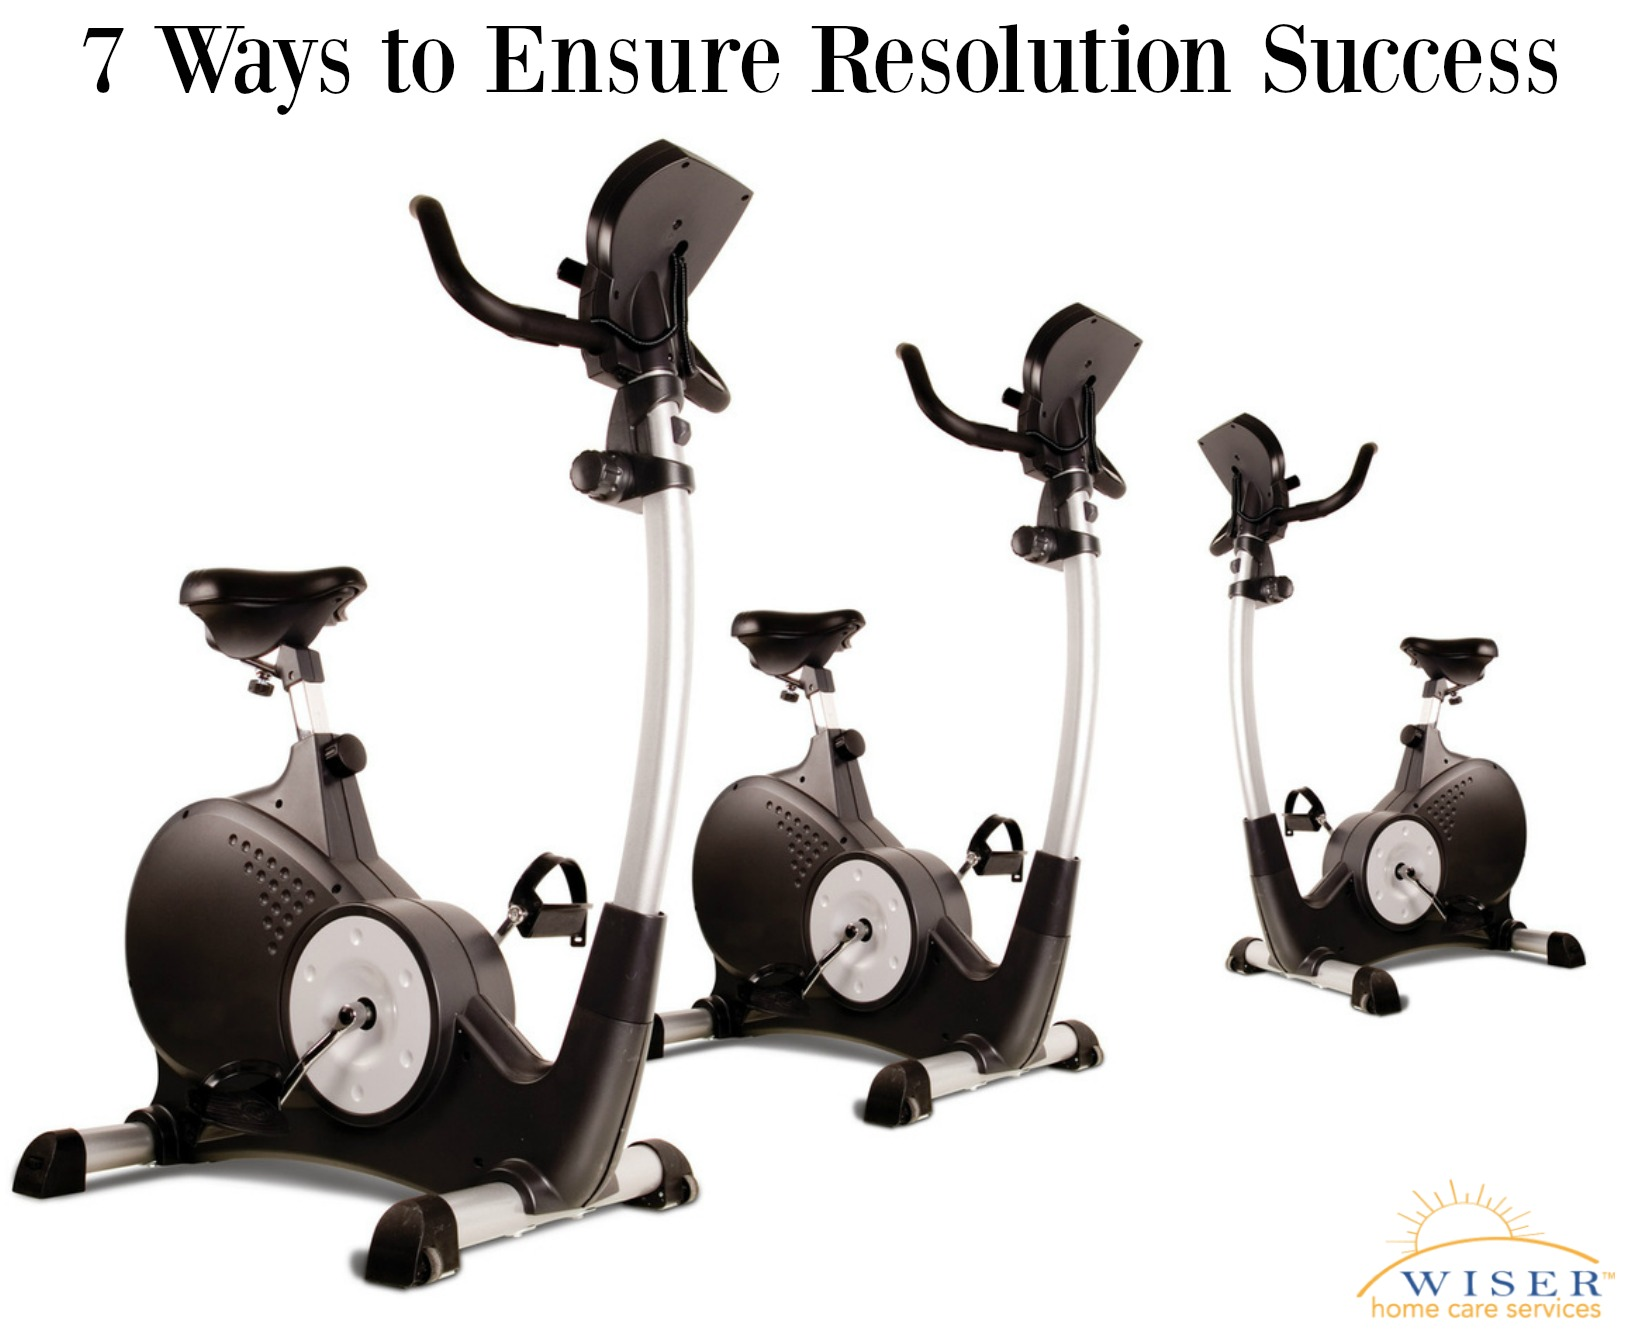 Making a New Year's Resolution is easy. Keeping it is not. If you are having trouble keeping it, keep reading to learn our 7 ways to resolution success.